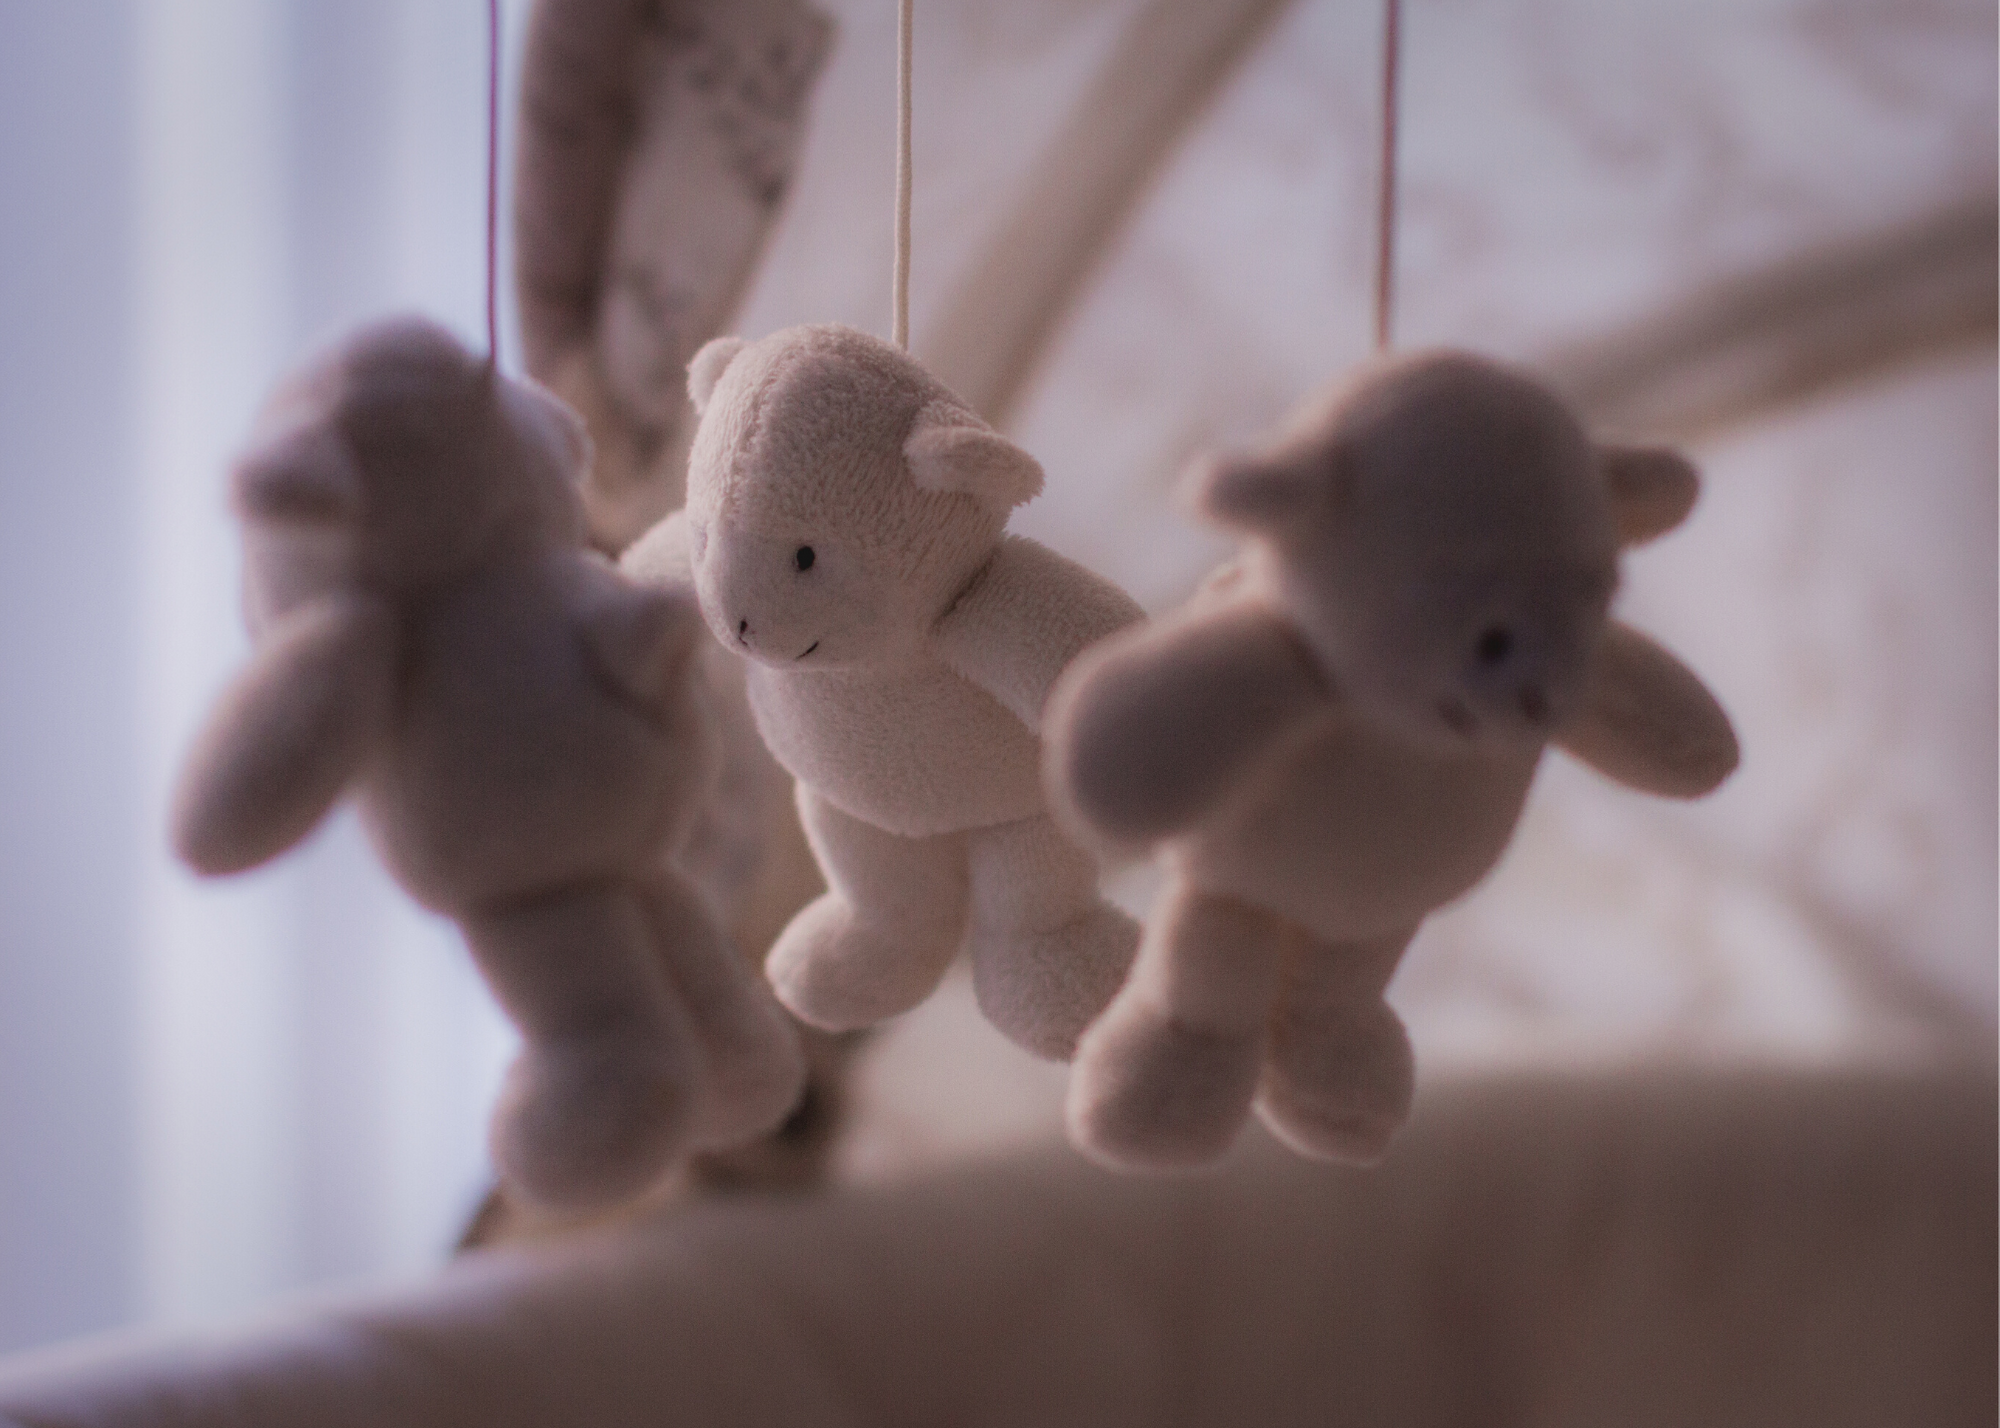 Teddy bear mobile above a crib